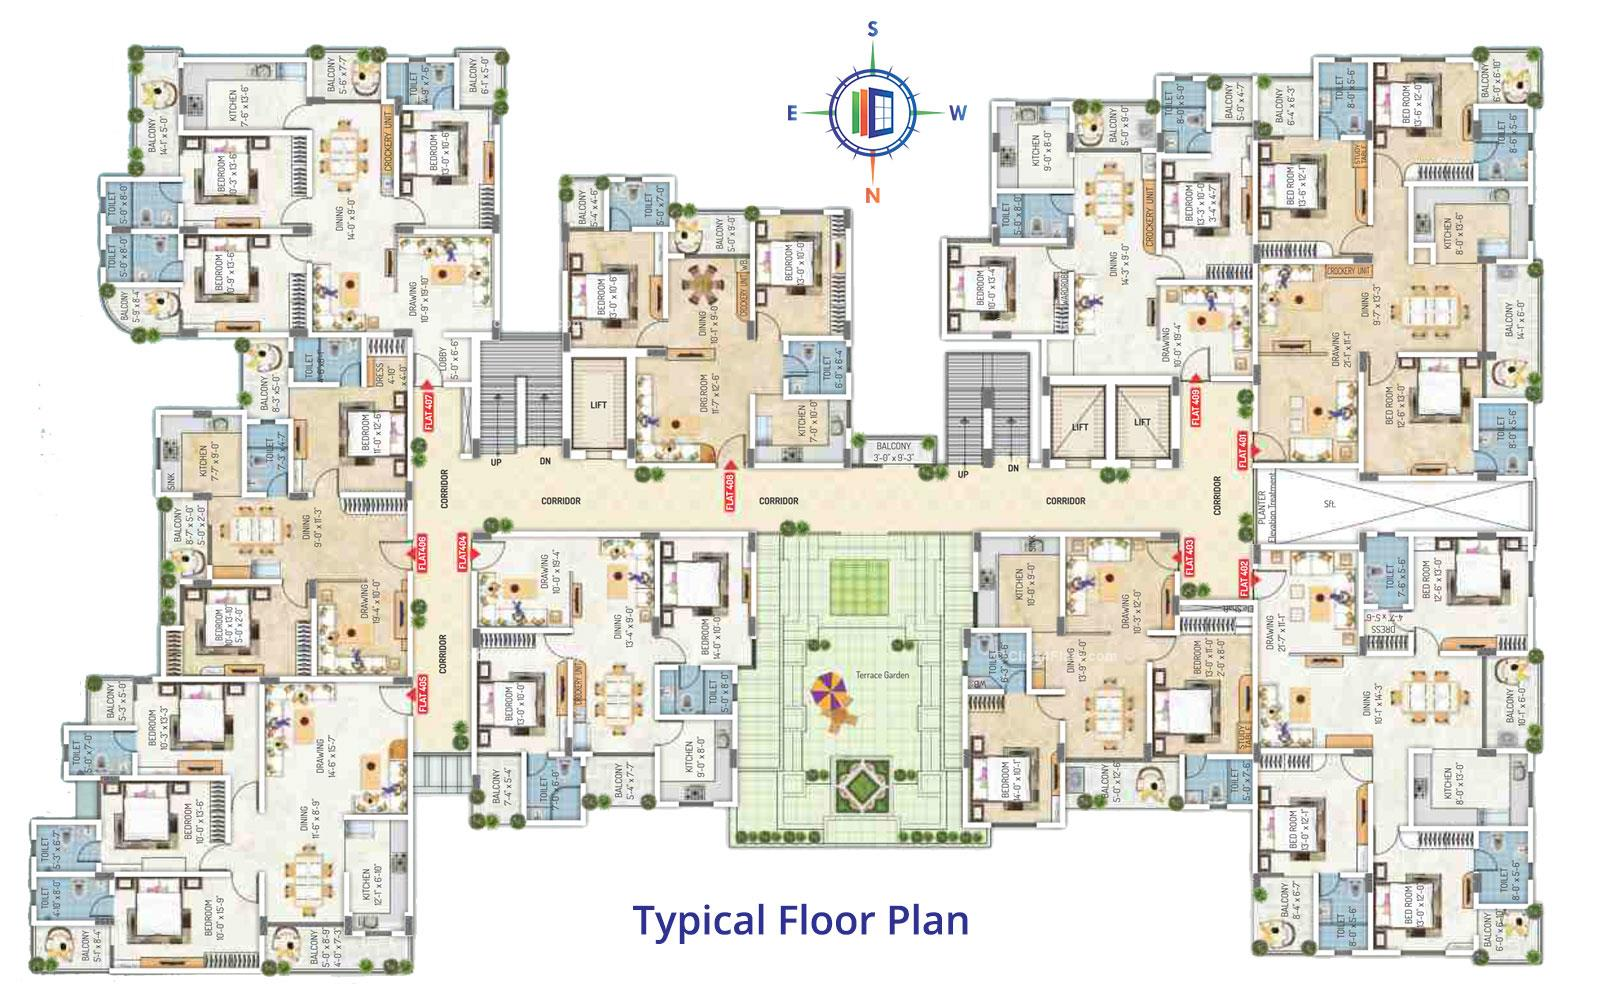 Royal Regalia Typical Floor Plan